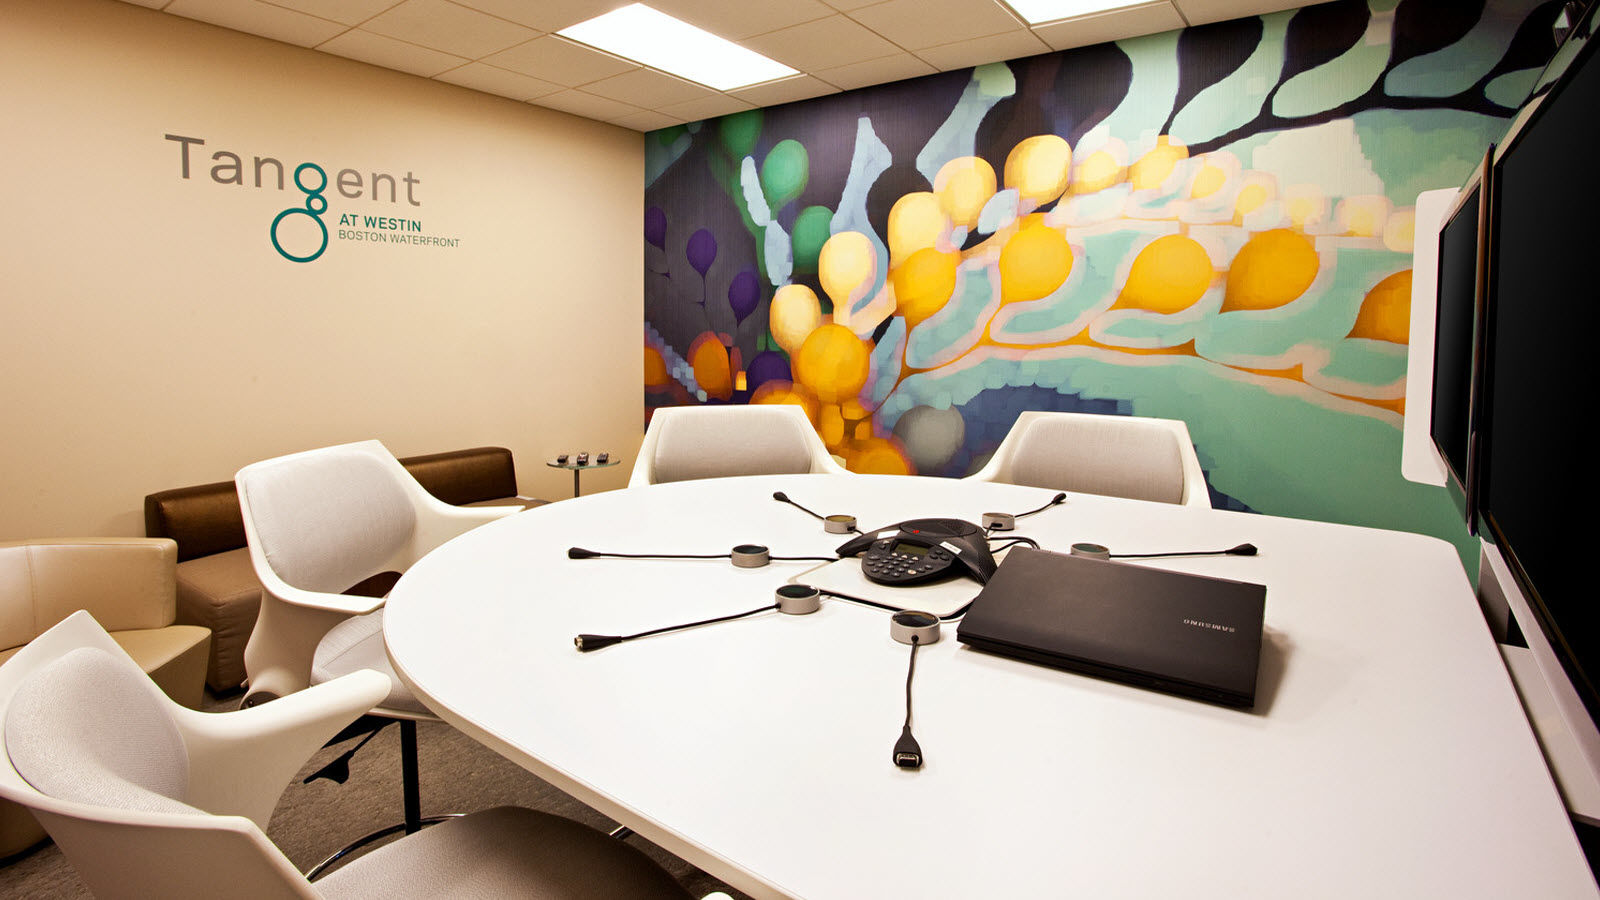 Tangent at Westin Boston Meeting Space